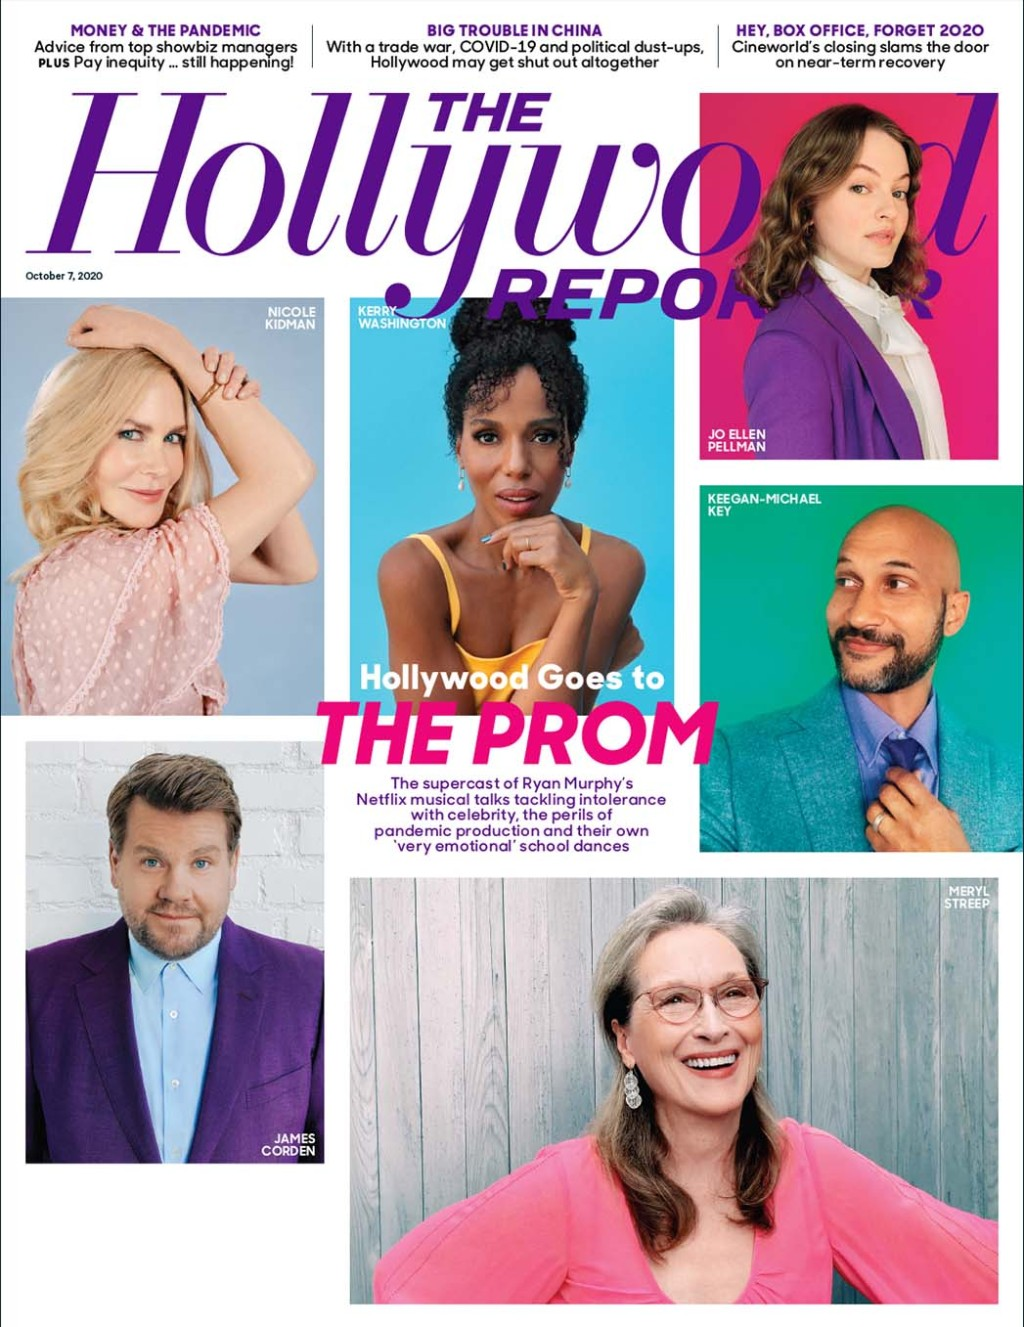 The Hollywood Reporter 27